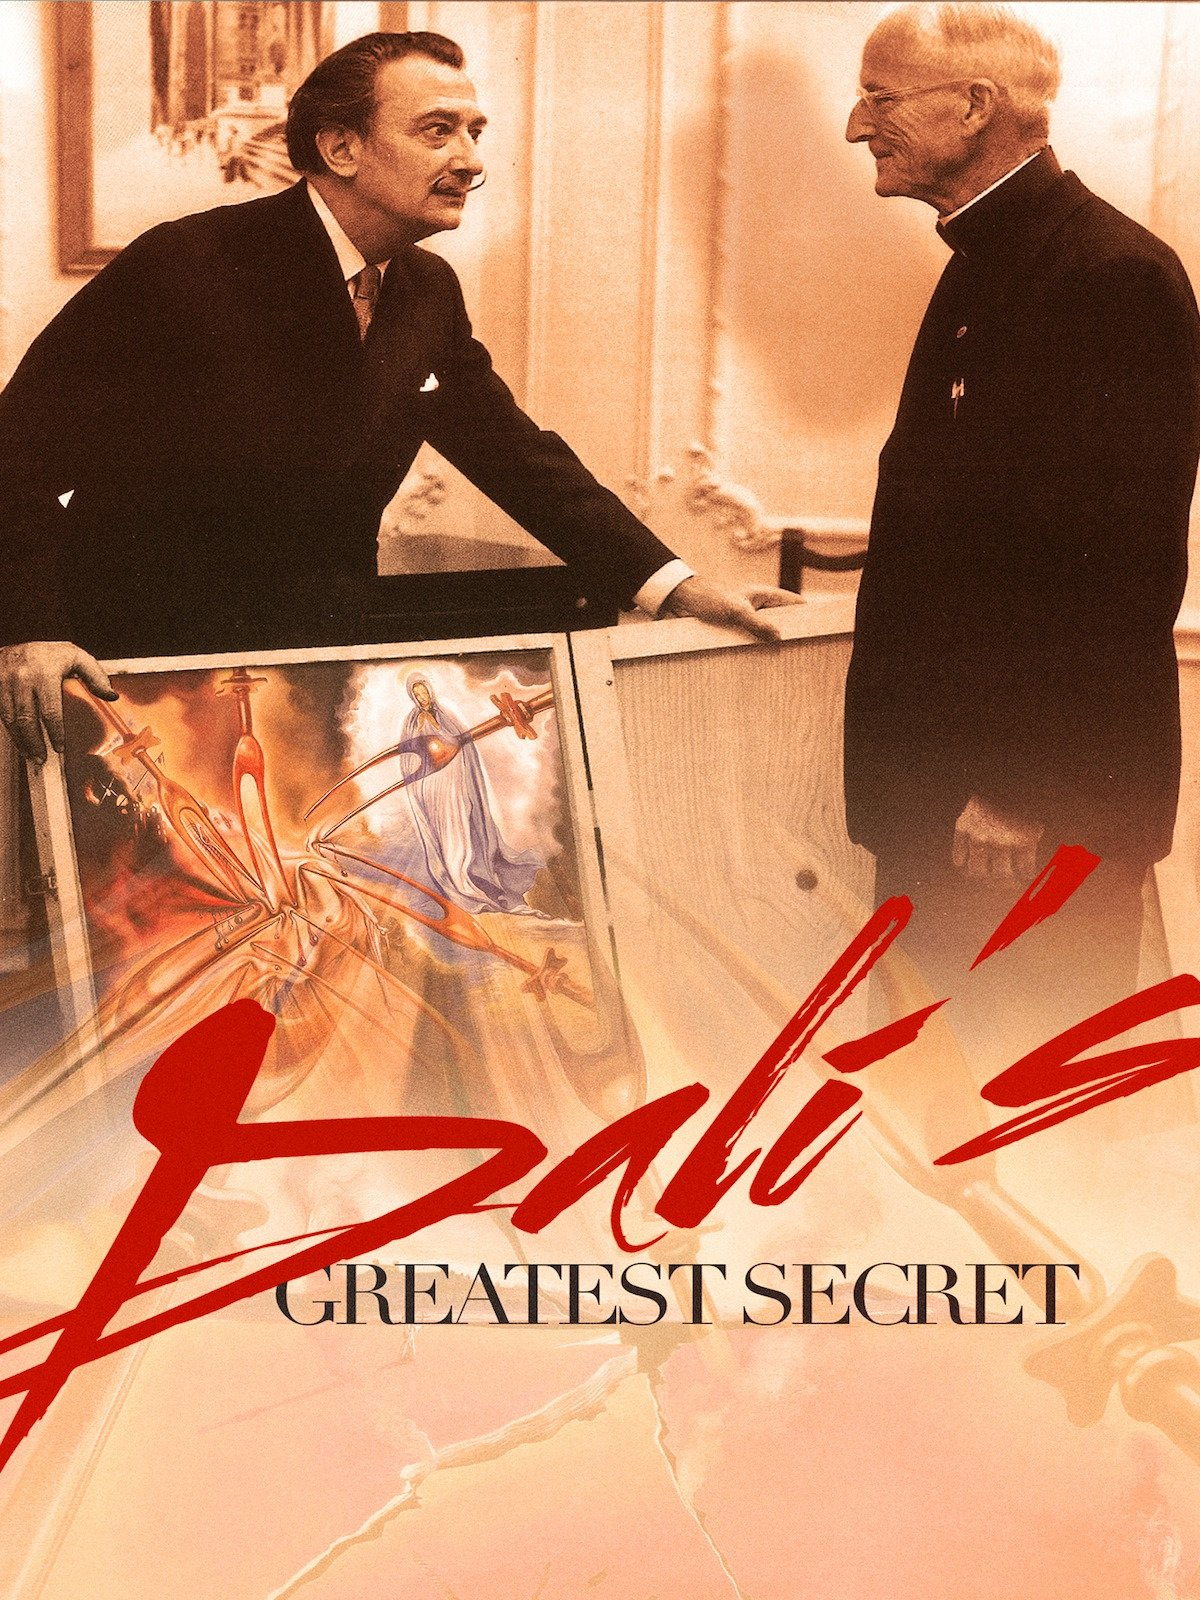 Dali's Greatest Secret